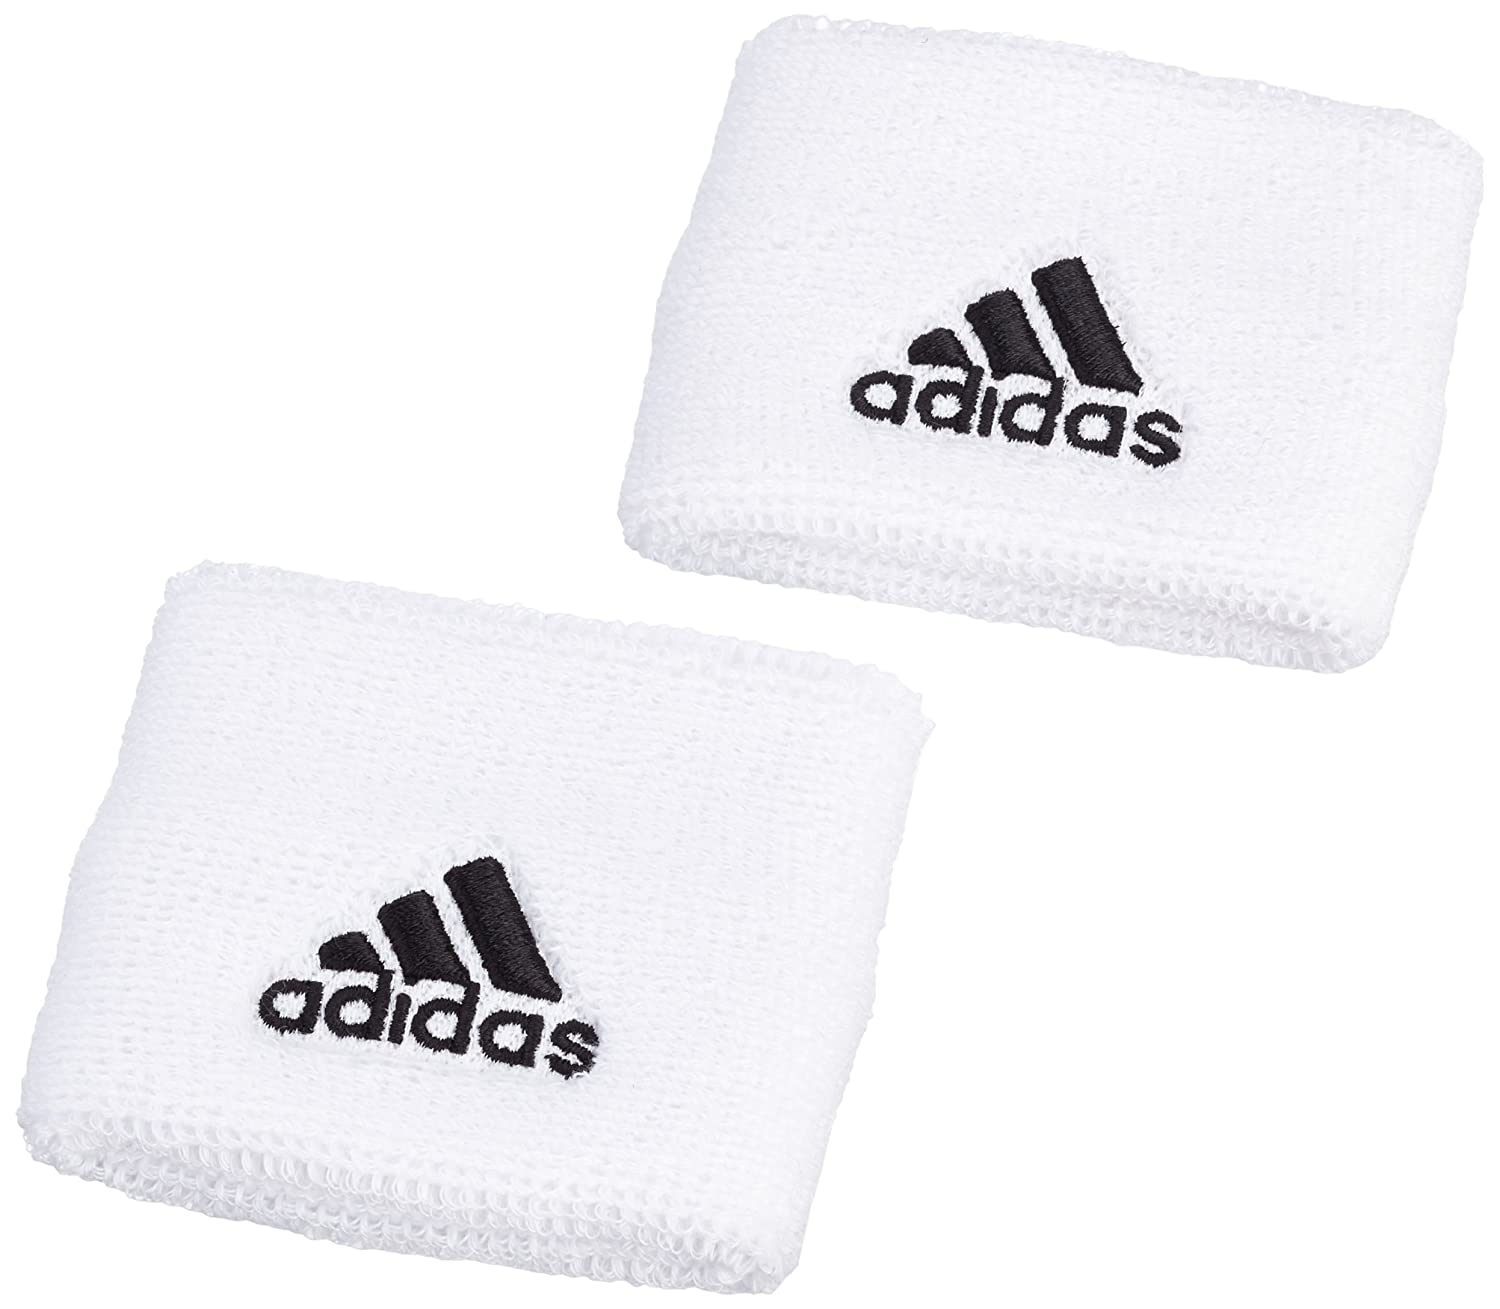 8c3b92891f6f Adidas Tennis Wrist Band  Amazon.co.uk  Sports   Outdoors